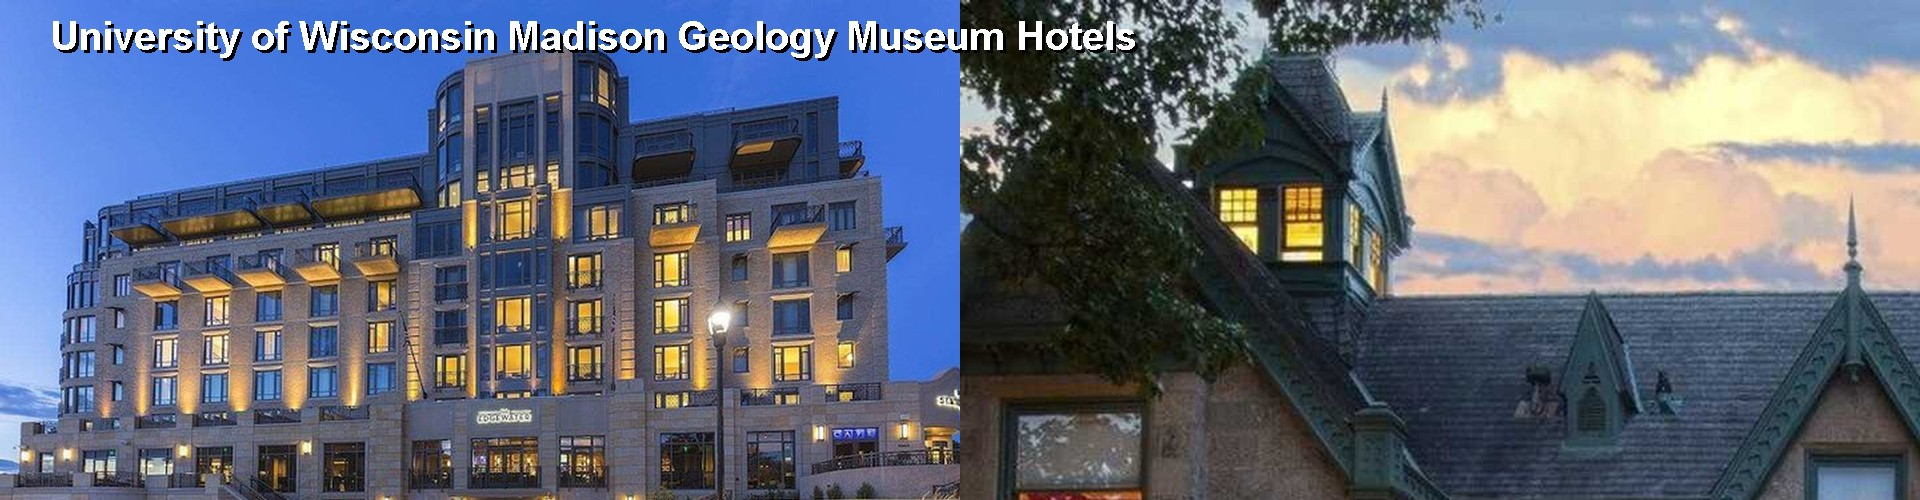 5 Best Hotels near University of Wisconsin Madison Geology Museum